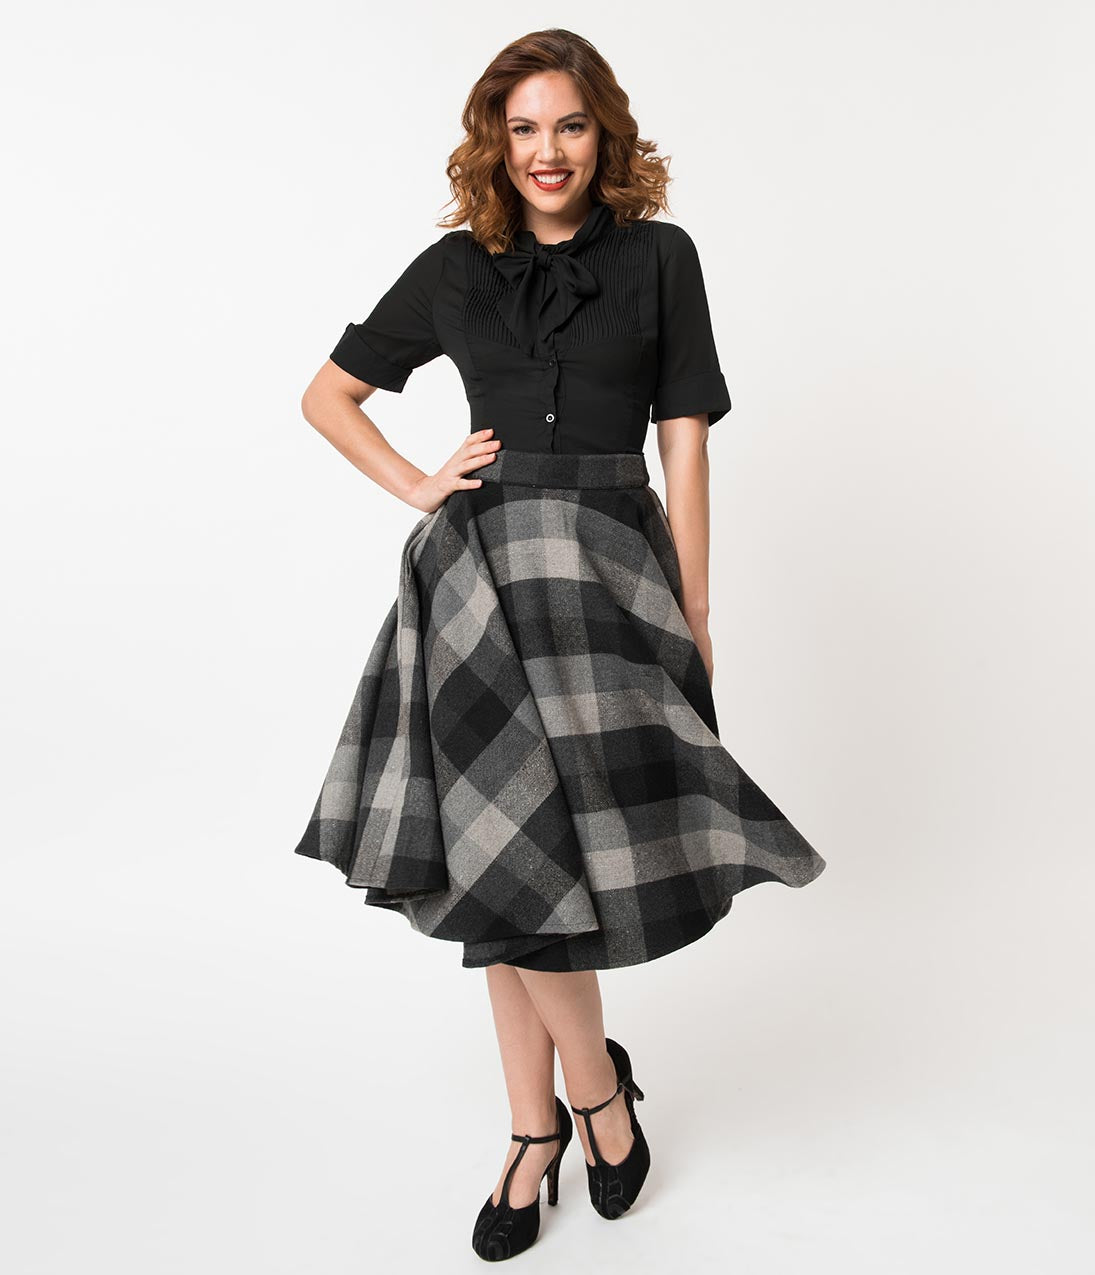 1950s Swing Skirt, Poodle Skirt, Pencil Skirts Retro Style Grey  Black Wool Checkered High Waist Sophie Swing Skirt $72.00 AT vintagedancer.com